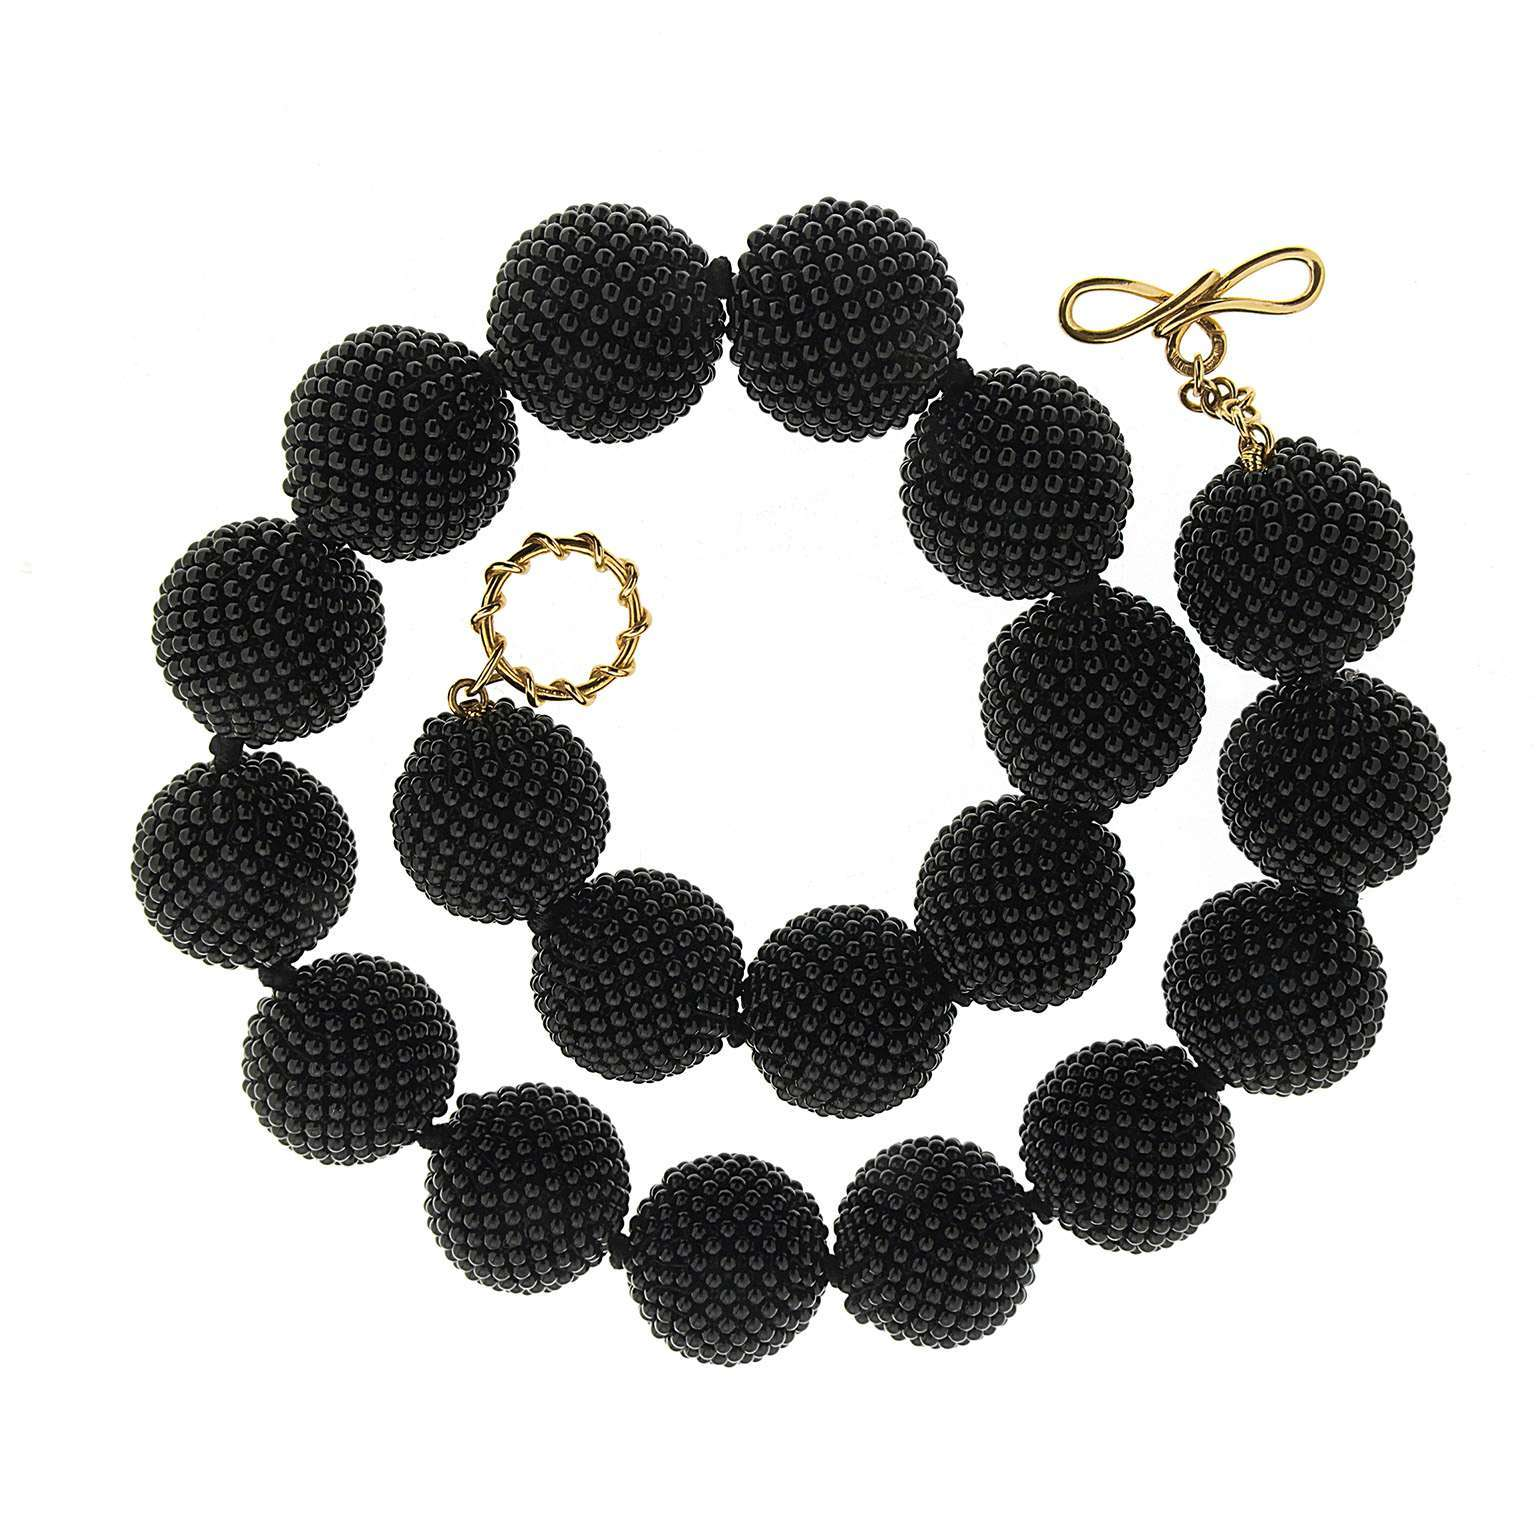 Black Onyx Woven Ball Necklace